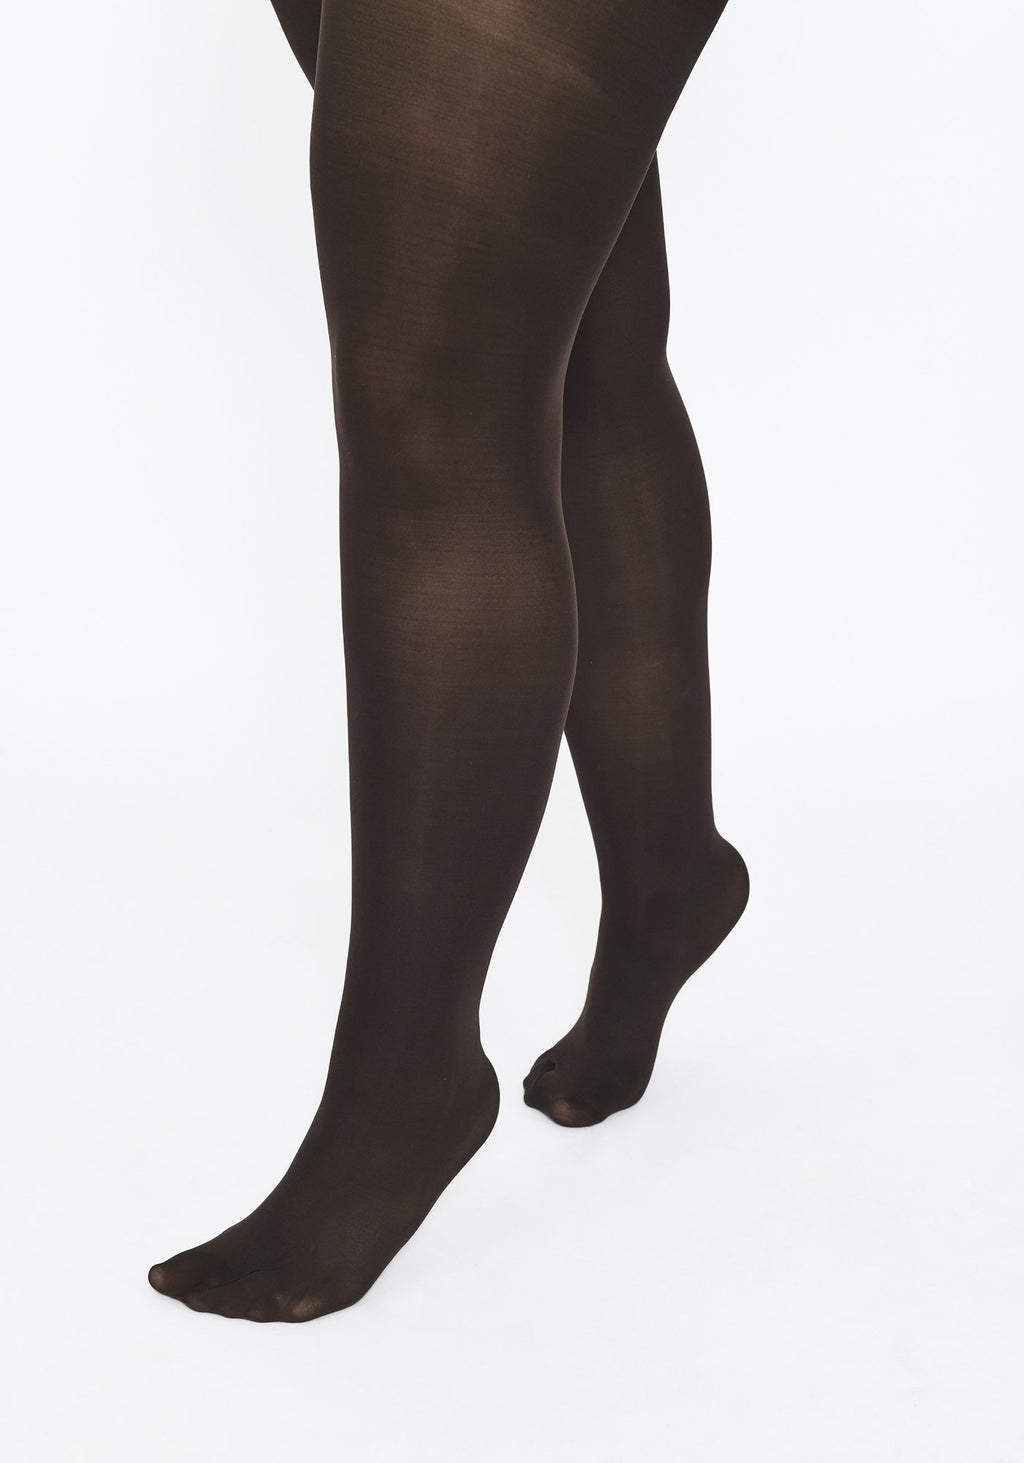 Plus Size Hazel 60 Denier Tights